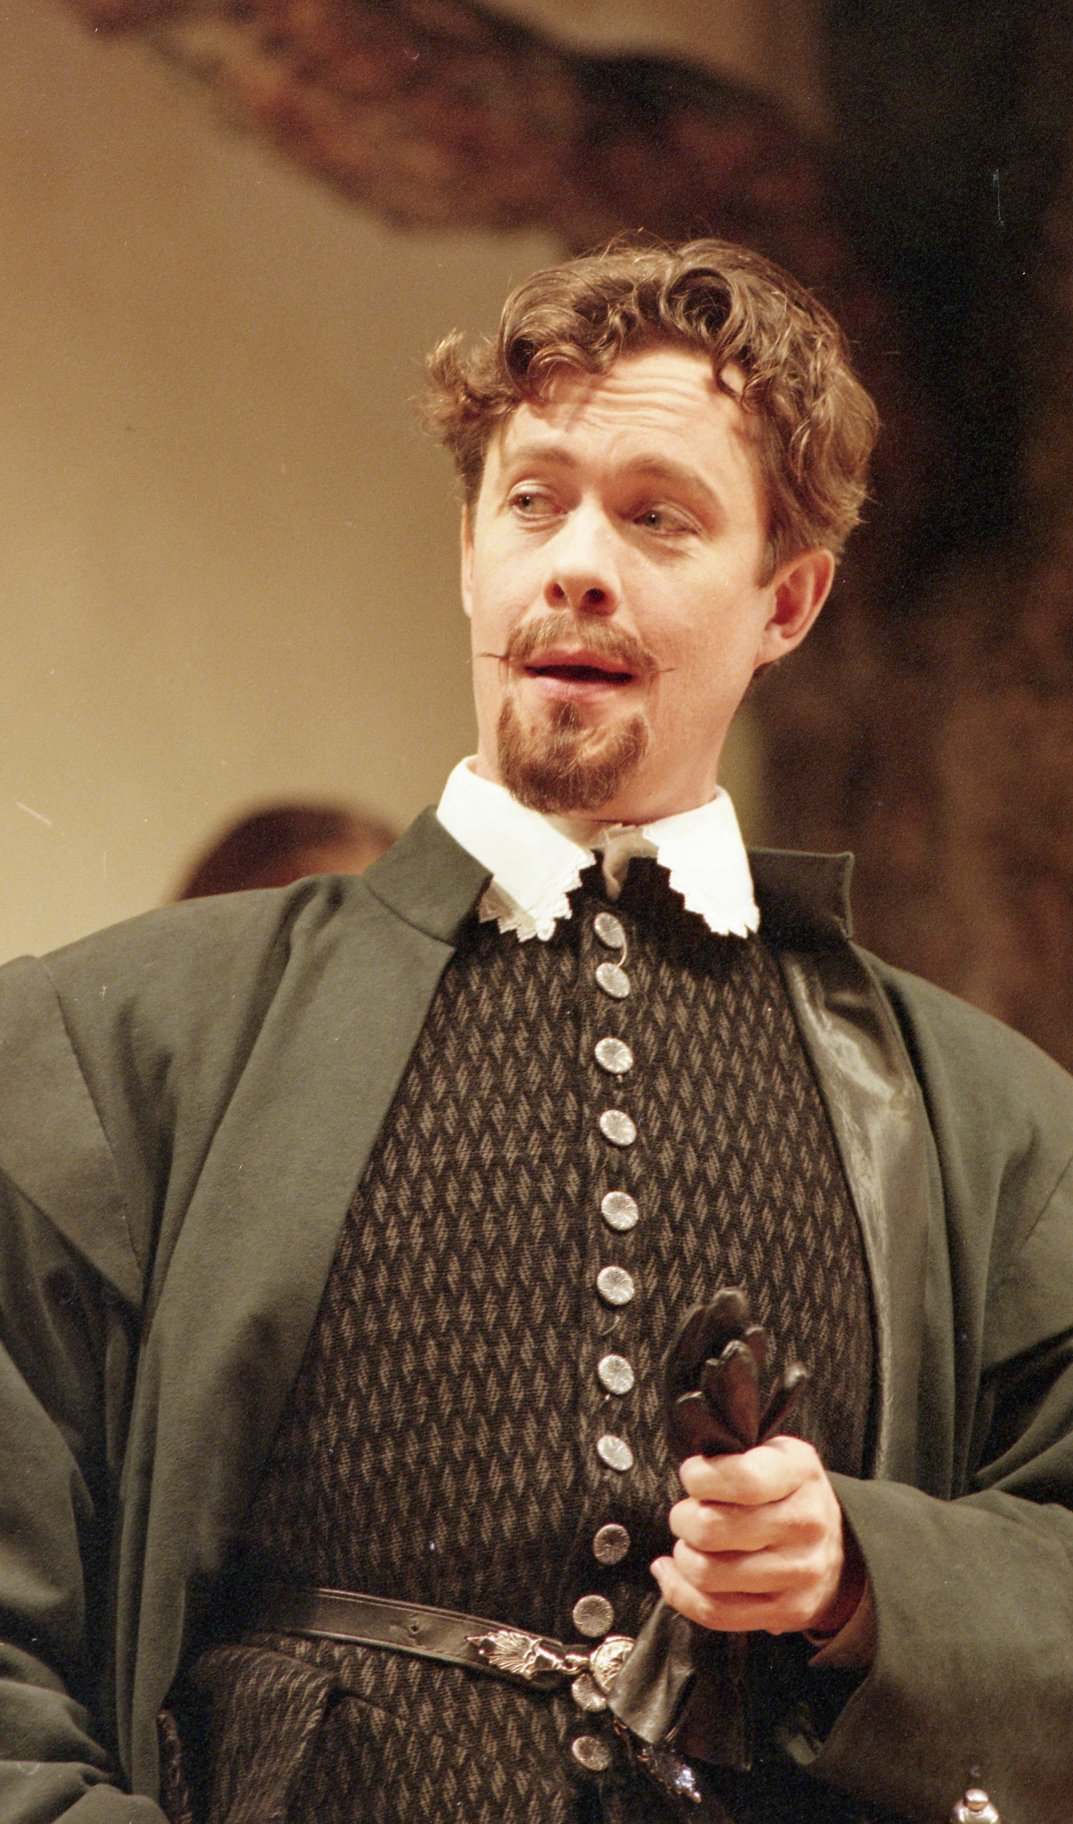 Benedick all in black and holding a pair of gloves.